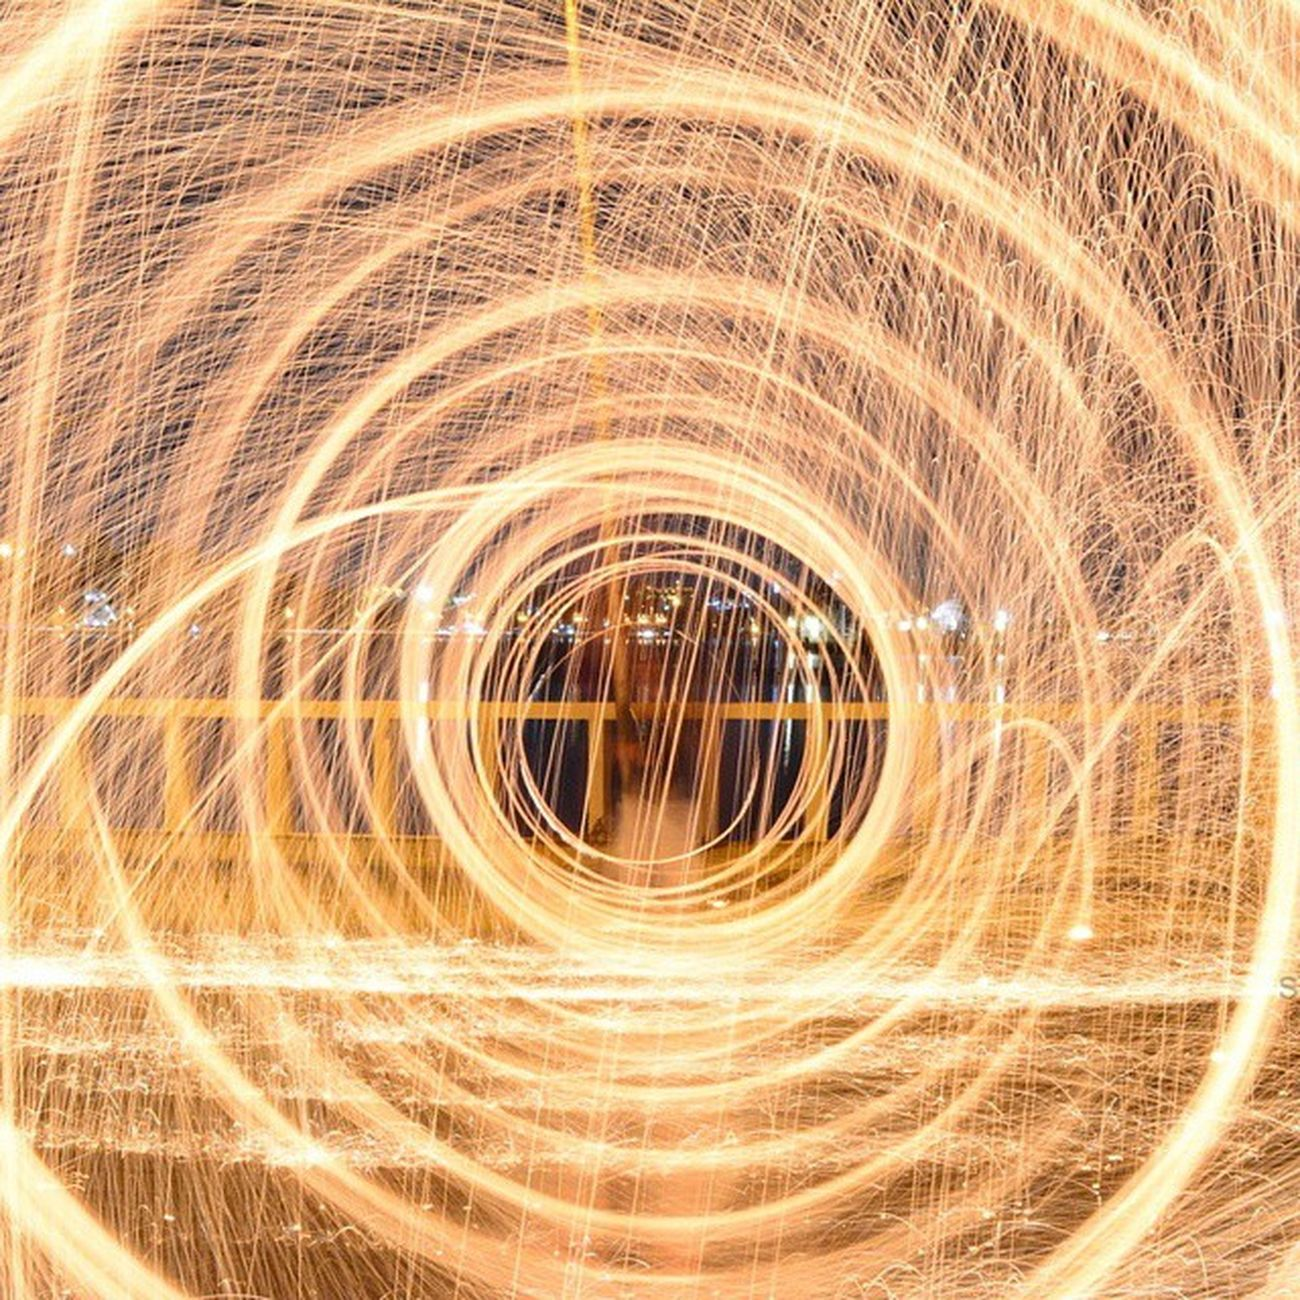 Second attempt to burning Steelwool Steelwoolphotography At Fatehsagar , Udaipur You can see the fatehsagar pal Behind the wool spinning. Spinner @divij with Rahul and prpixel steelwool_daily steelwool_photography steelwool lightpainting longexposurestyles_gf longexpohunter longexposhots igersrajasthan igers rajasthan @instaudaipur instaudaipur IndiaPictures ig_india india_gram @india_and_me unique_click loves_longexpo tv_longexposure splendid_xposure ic_longexpo sg_le longexpoelite phototag_longexp lewhisperers igshotz_le longexposureoftheday tgif_longexpo